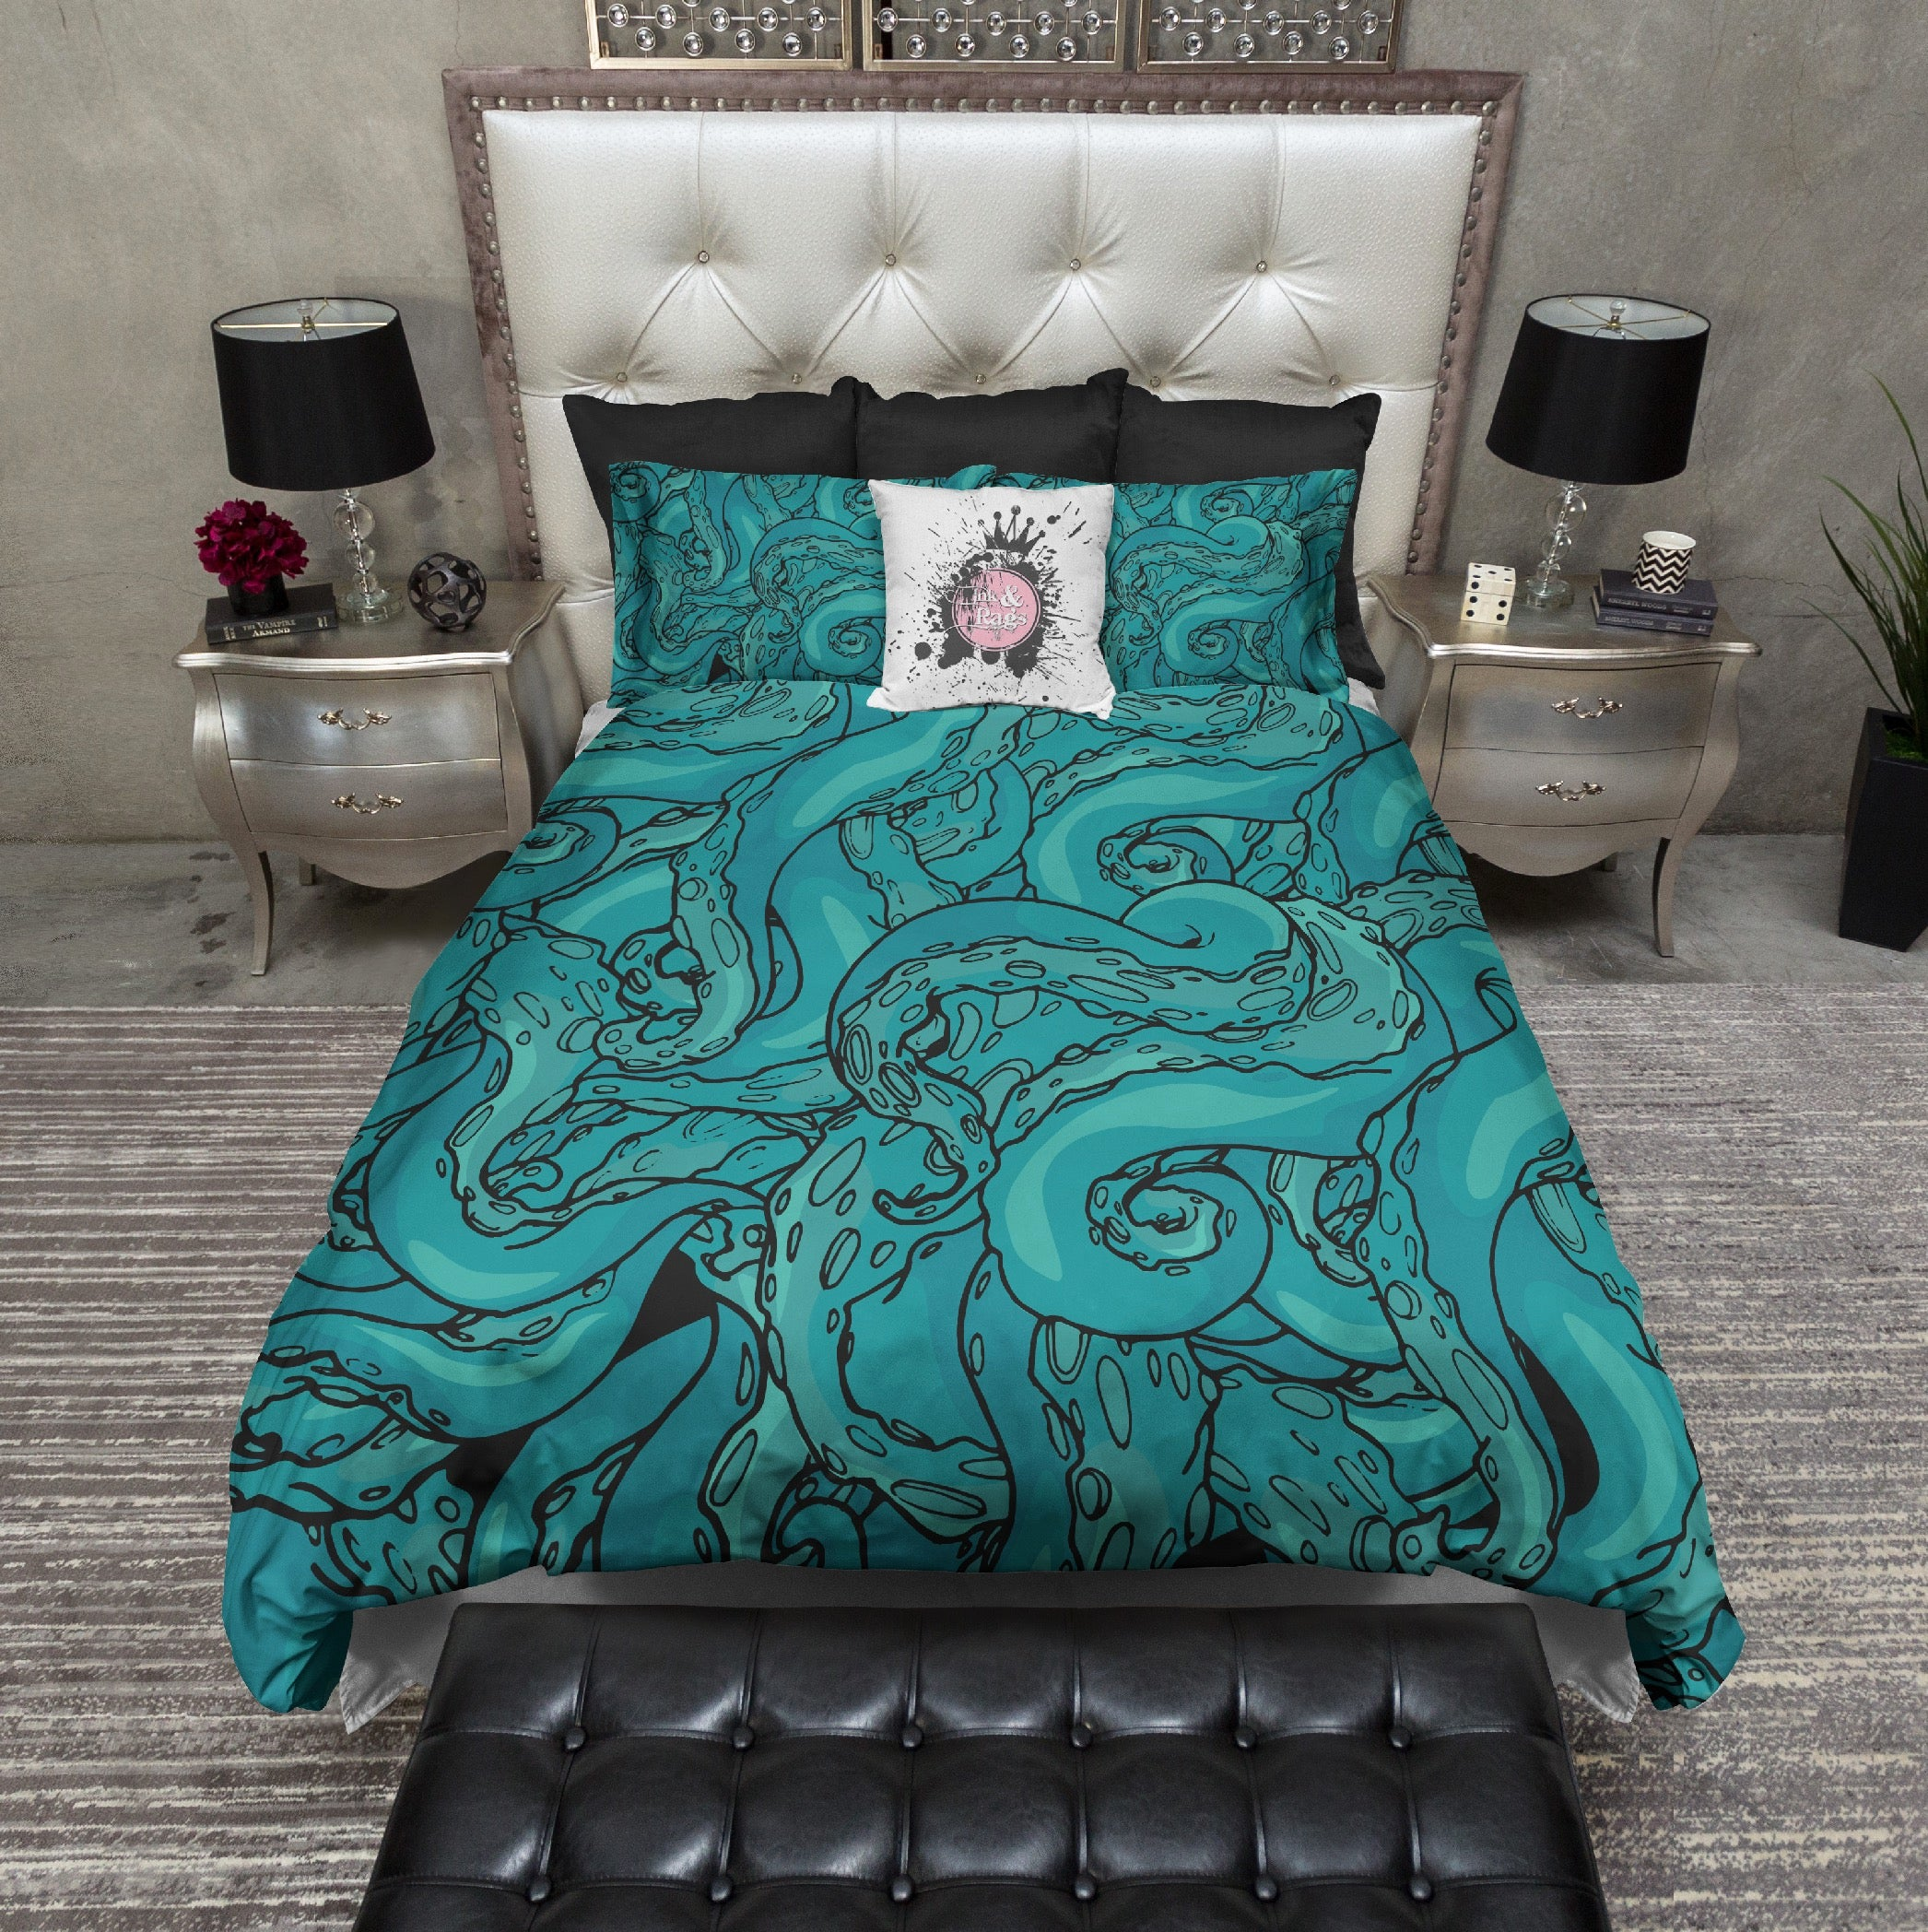 printed uk bedding set bed amazon king kitchen size home co quilt cover teal duvet dp